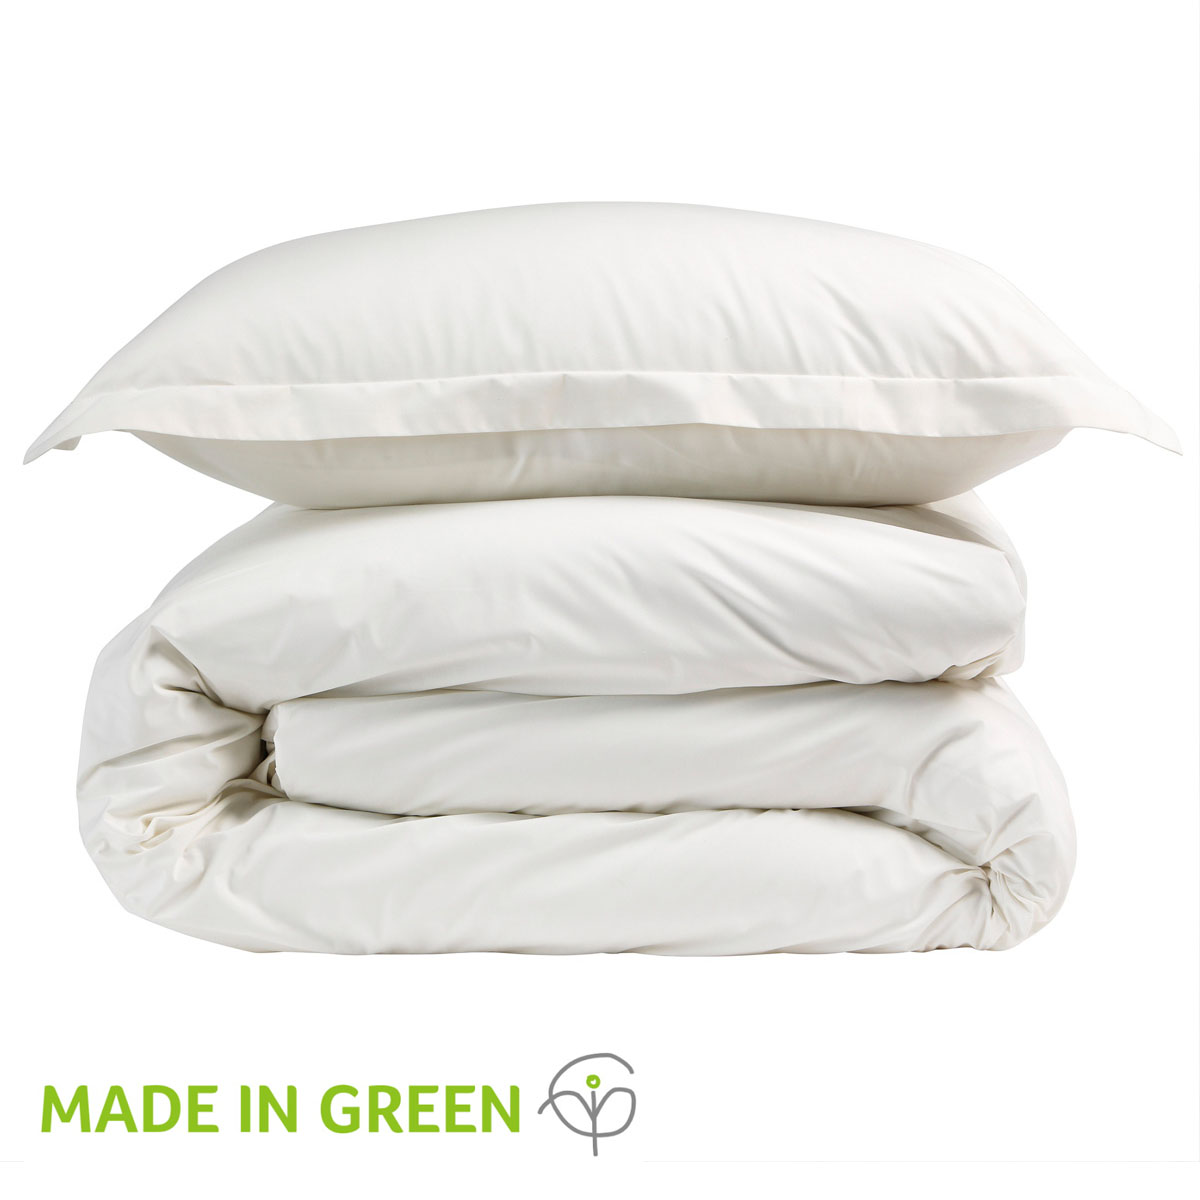 An image of 200 Easycare Double Fitted Sheet Cream